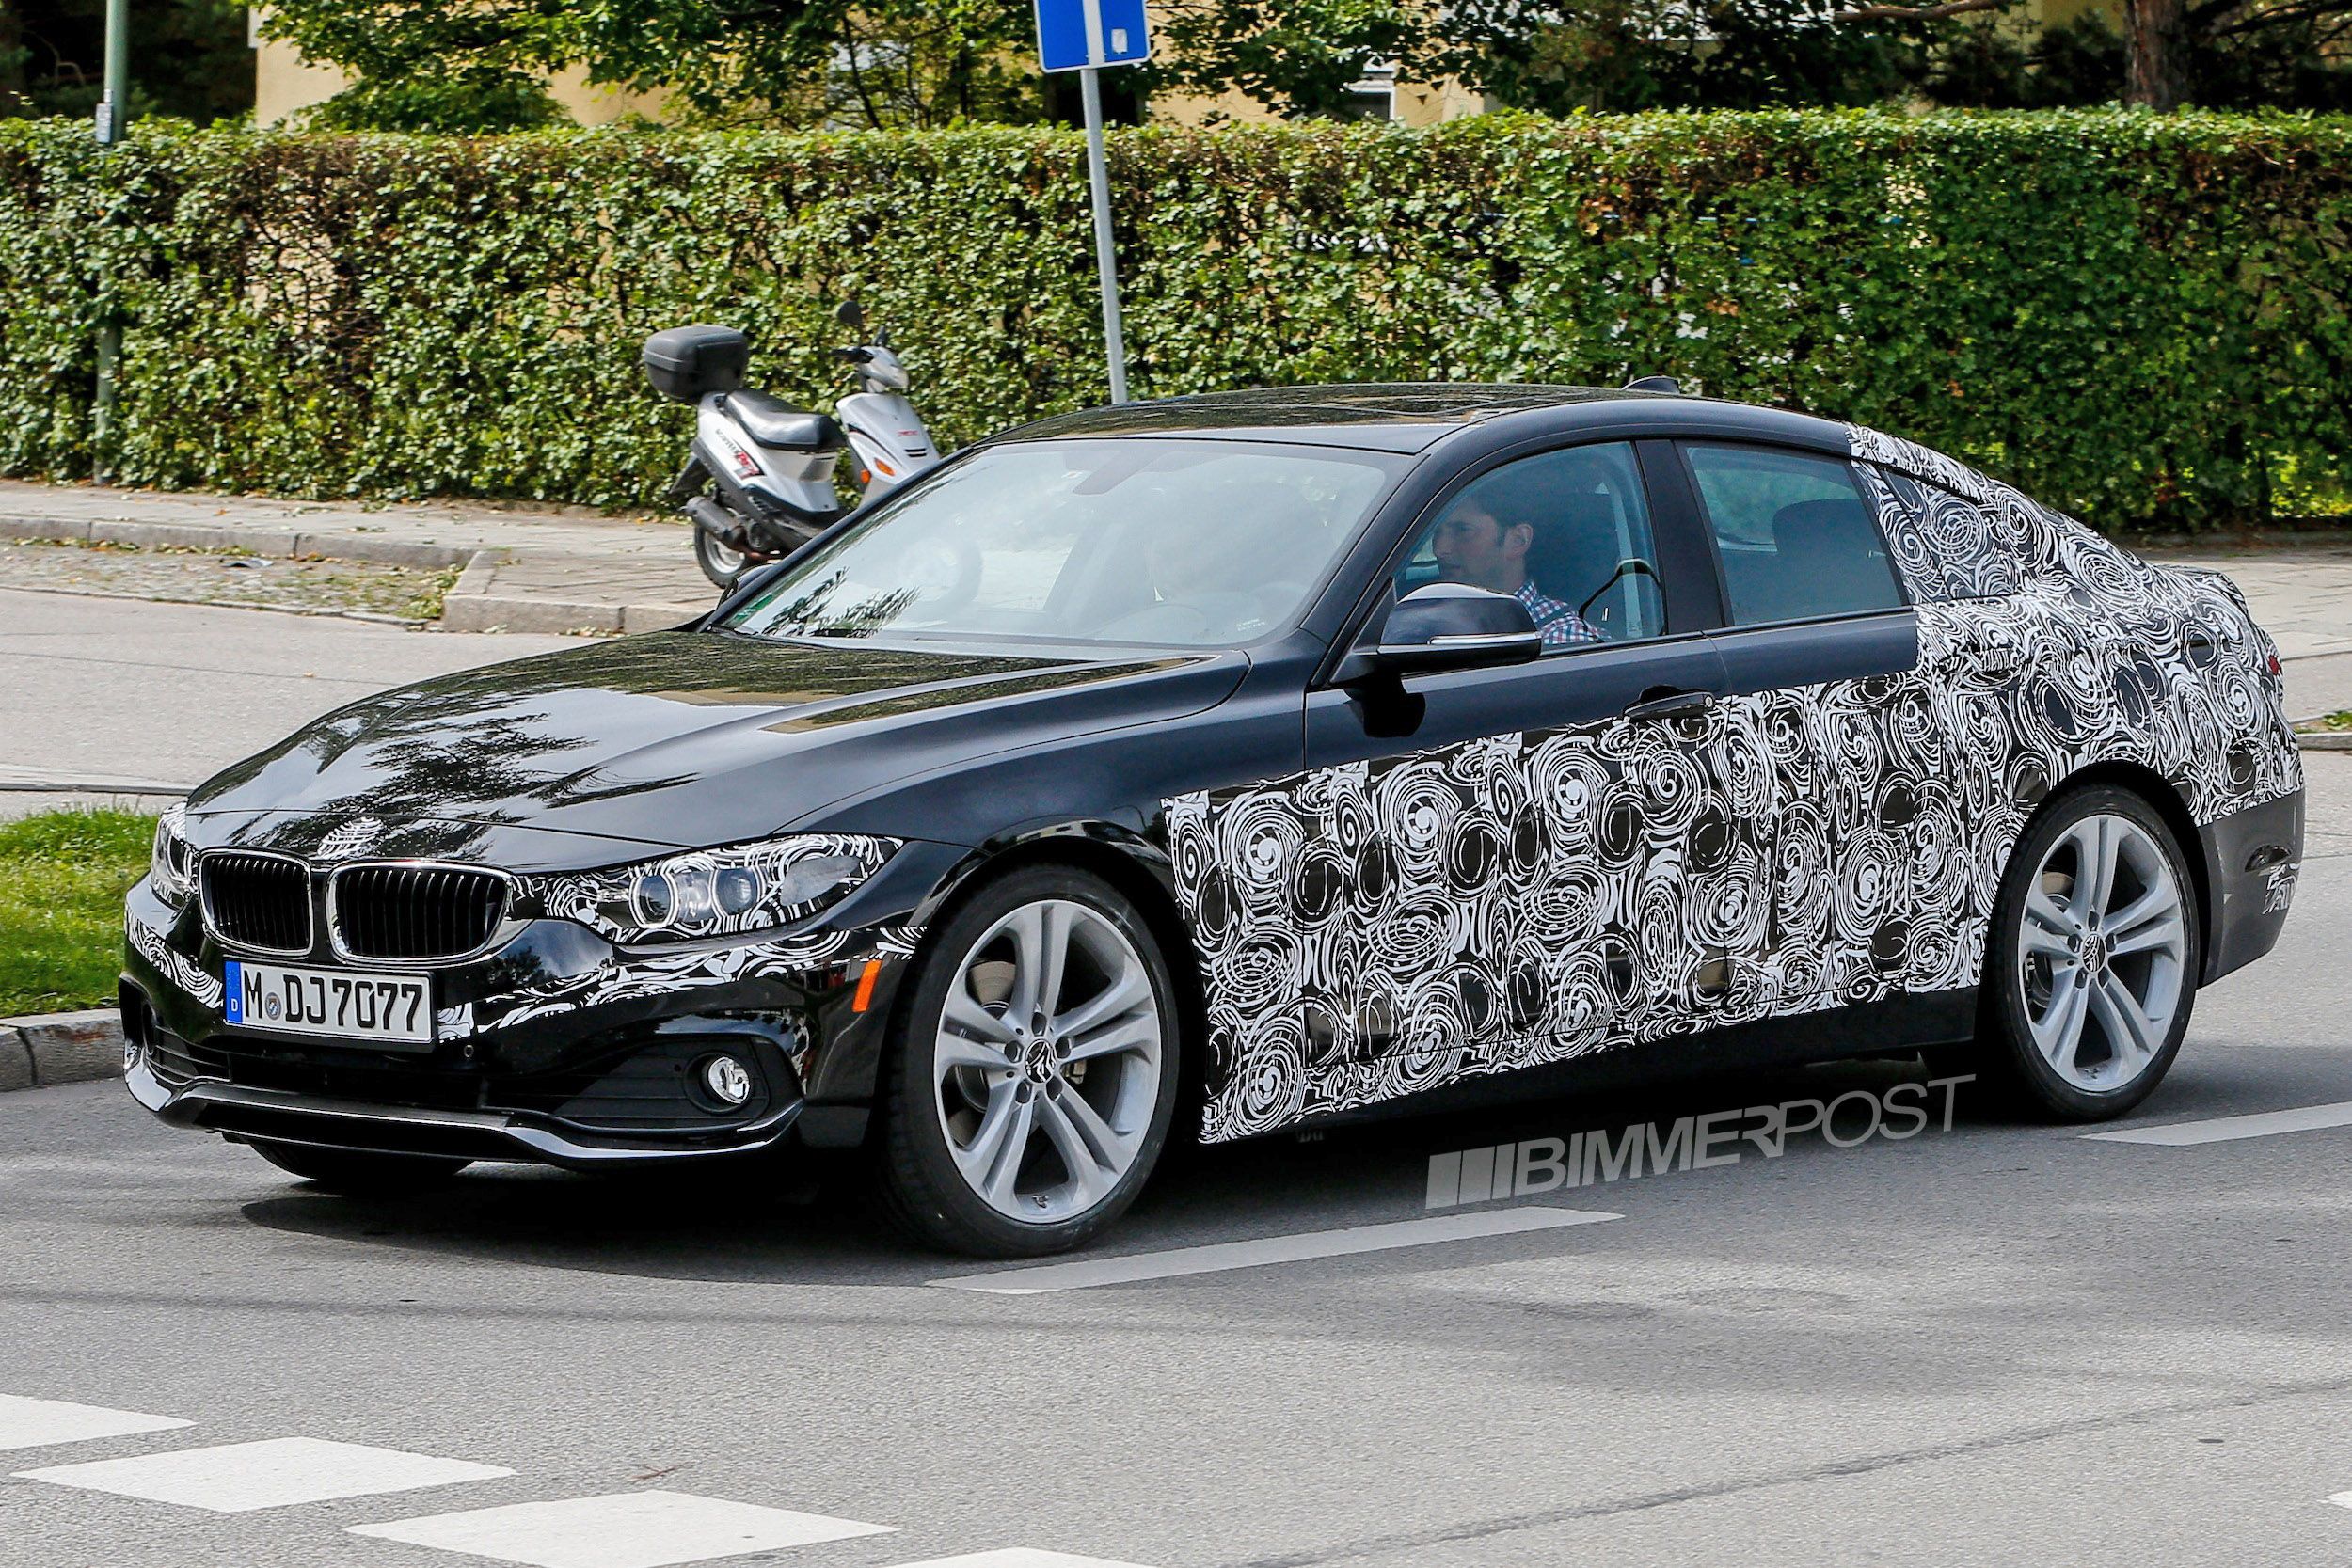 bmw 4 series gran coupe re emerges with less camo added m sport pics 10 5. Black Bedroom Furniture Sets. Home Design Ideas